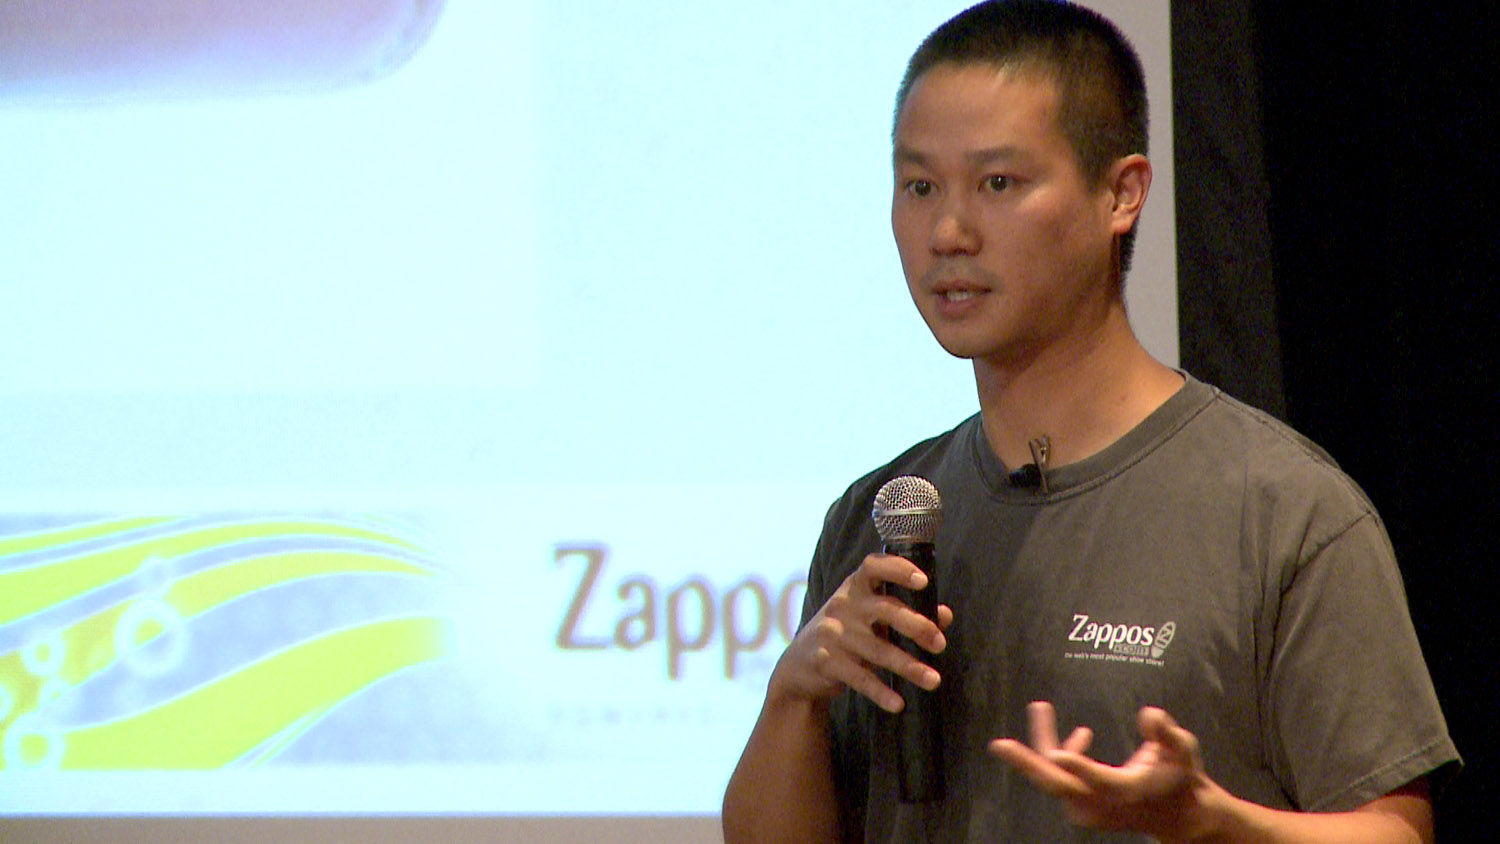 Zappos, Startup, Customer, Quality, Innovation